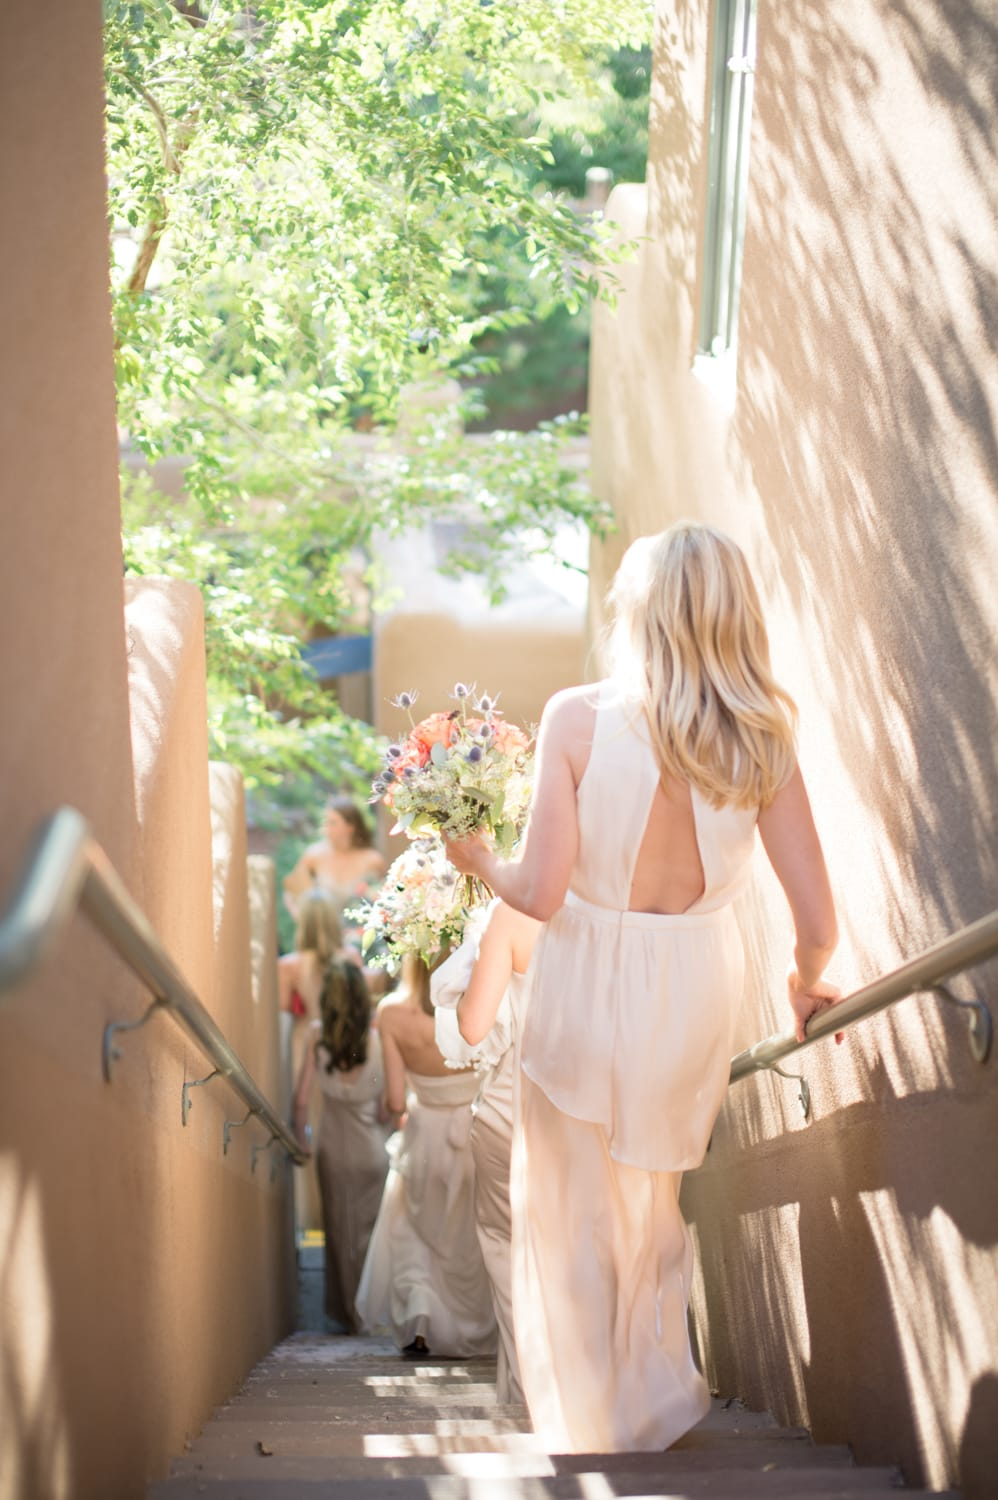 Sam+Kate_Santa_Fe_Wed-293.jpg